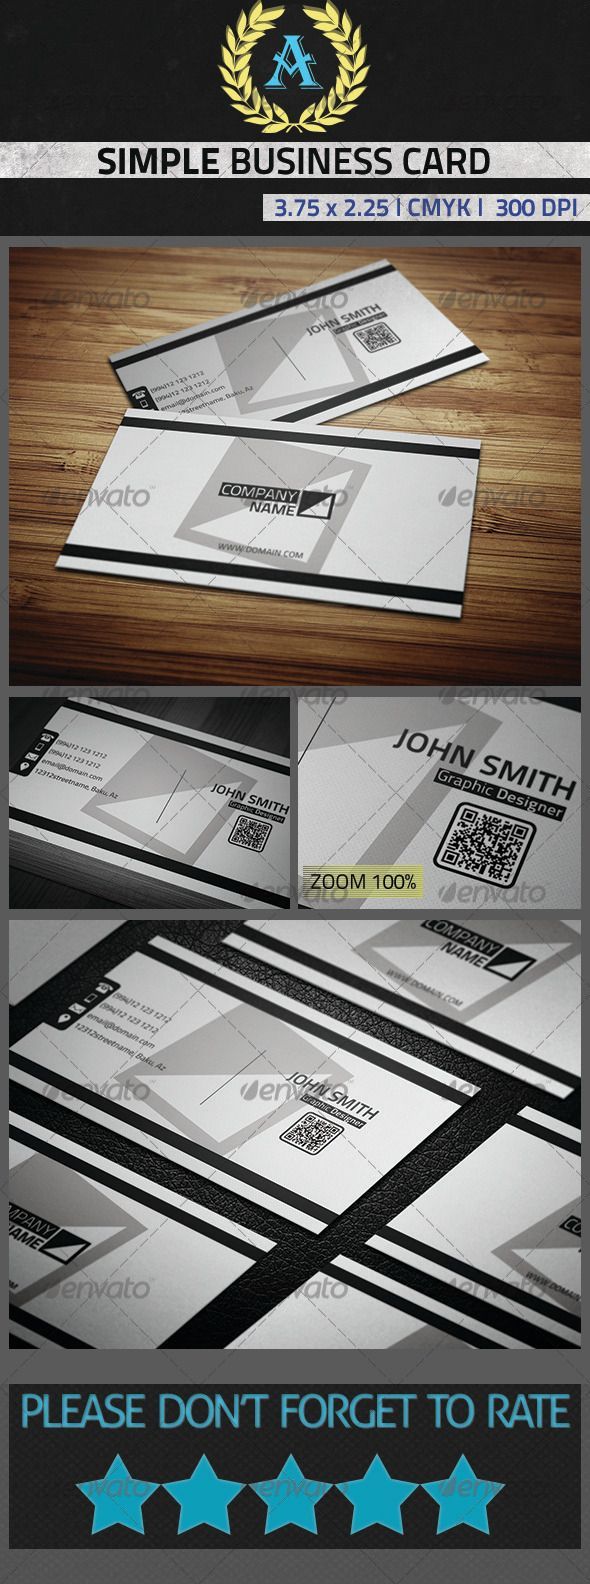 117 best business cards psd with qr code images on pinterest we recommend the qr code below for this business card click http colourmoves